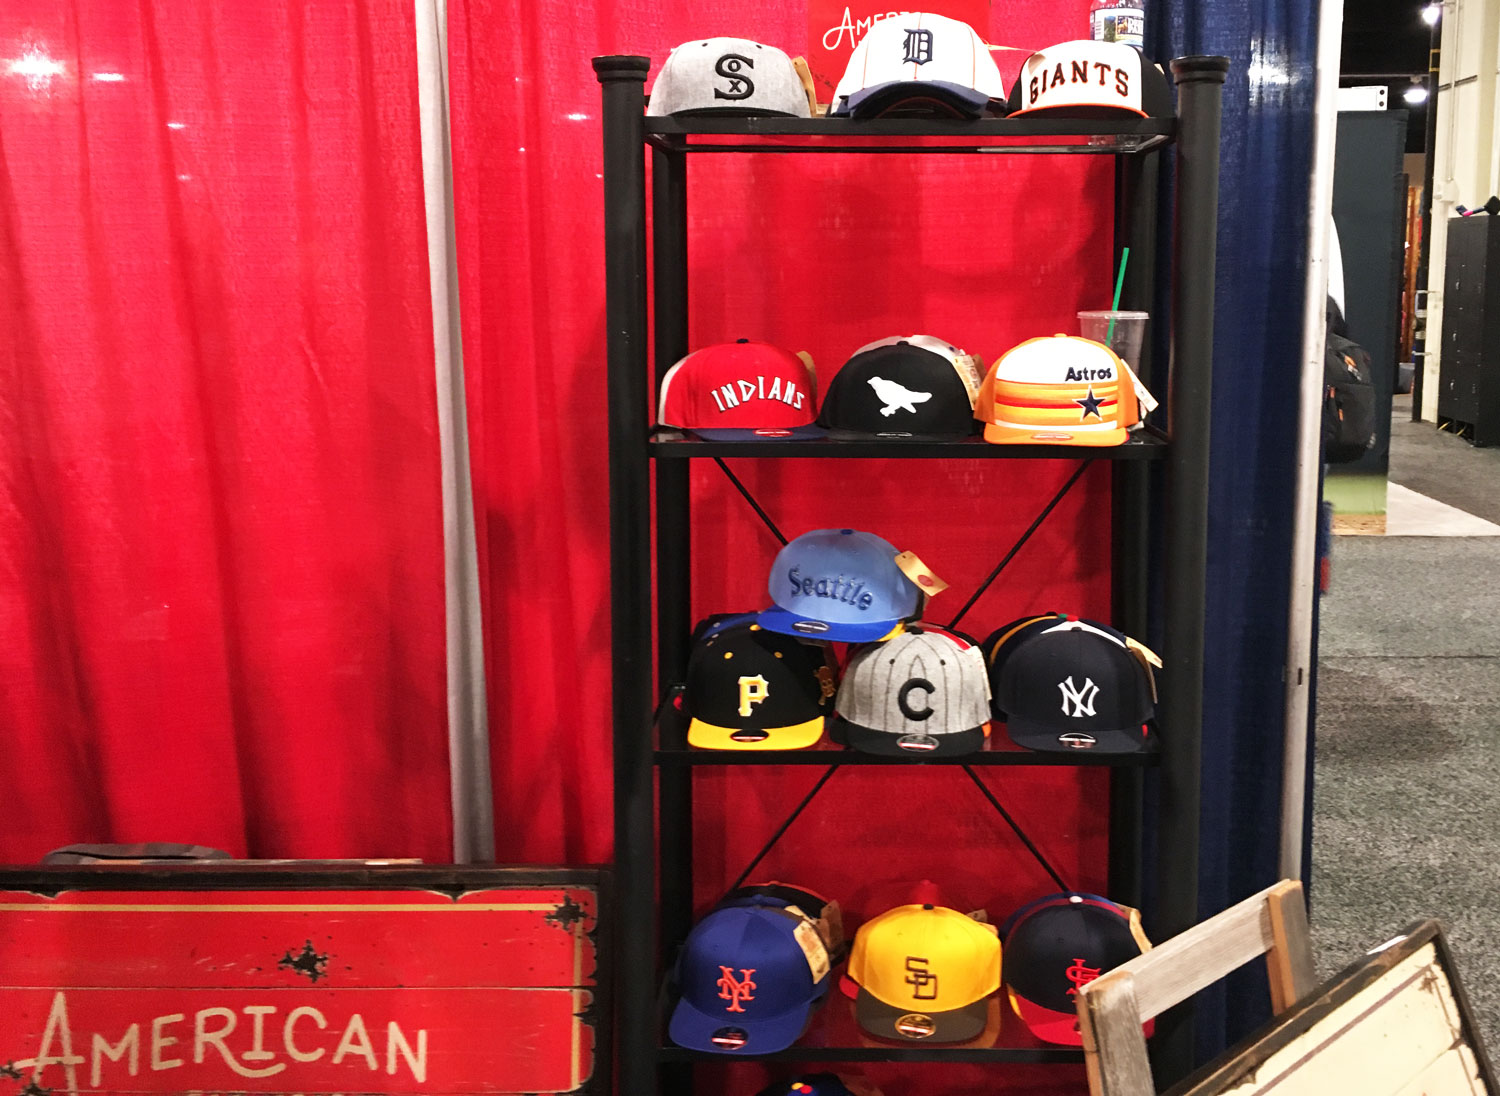 Apparel offerings from American Needle, one of the oldest companies set up at the Trade Show. (WTOP/Noah Frank)